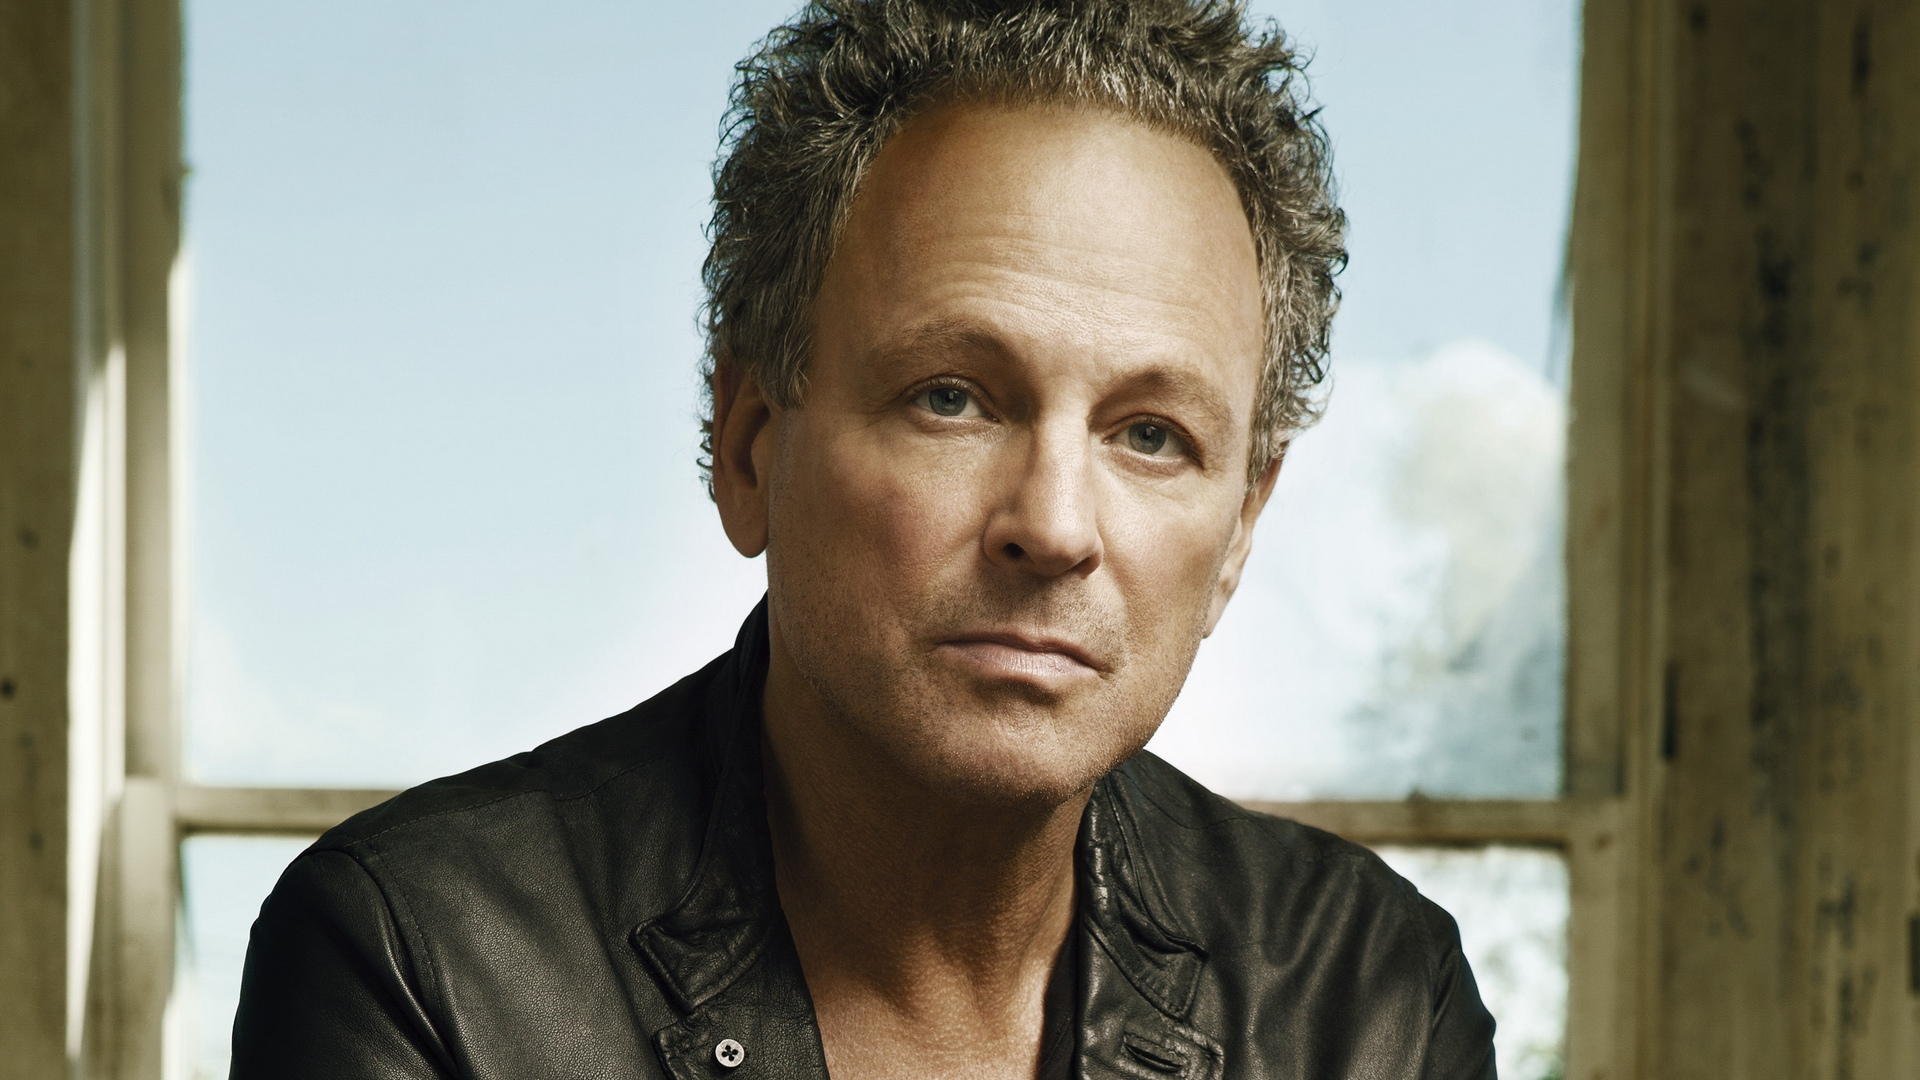 Neste Blir In My World av Lindsey Buckingham